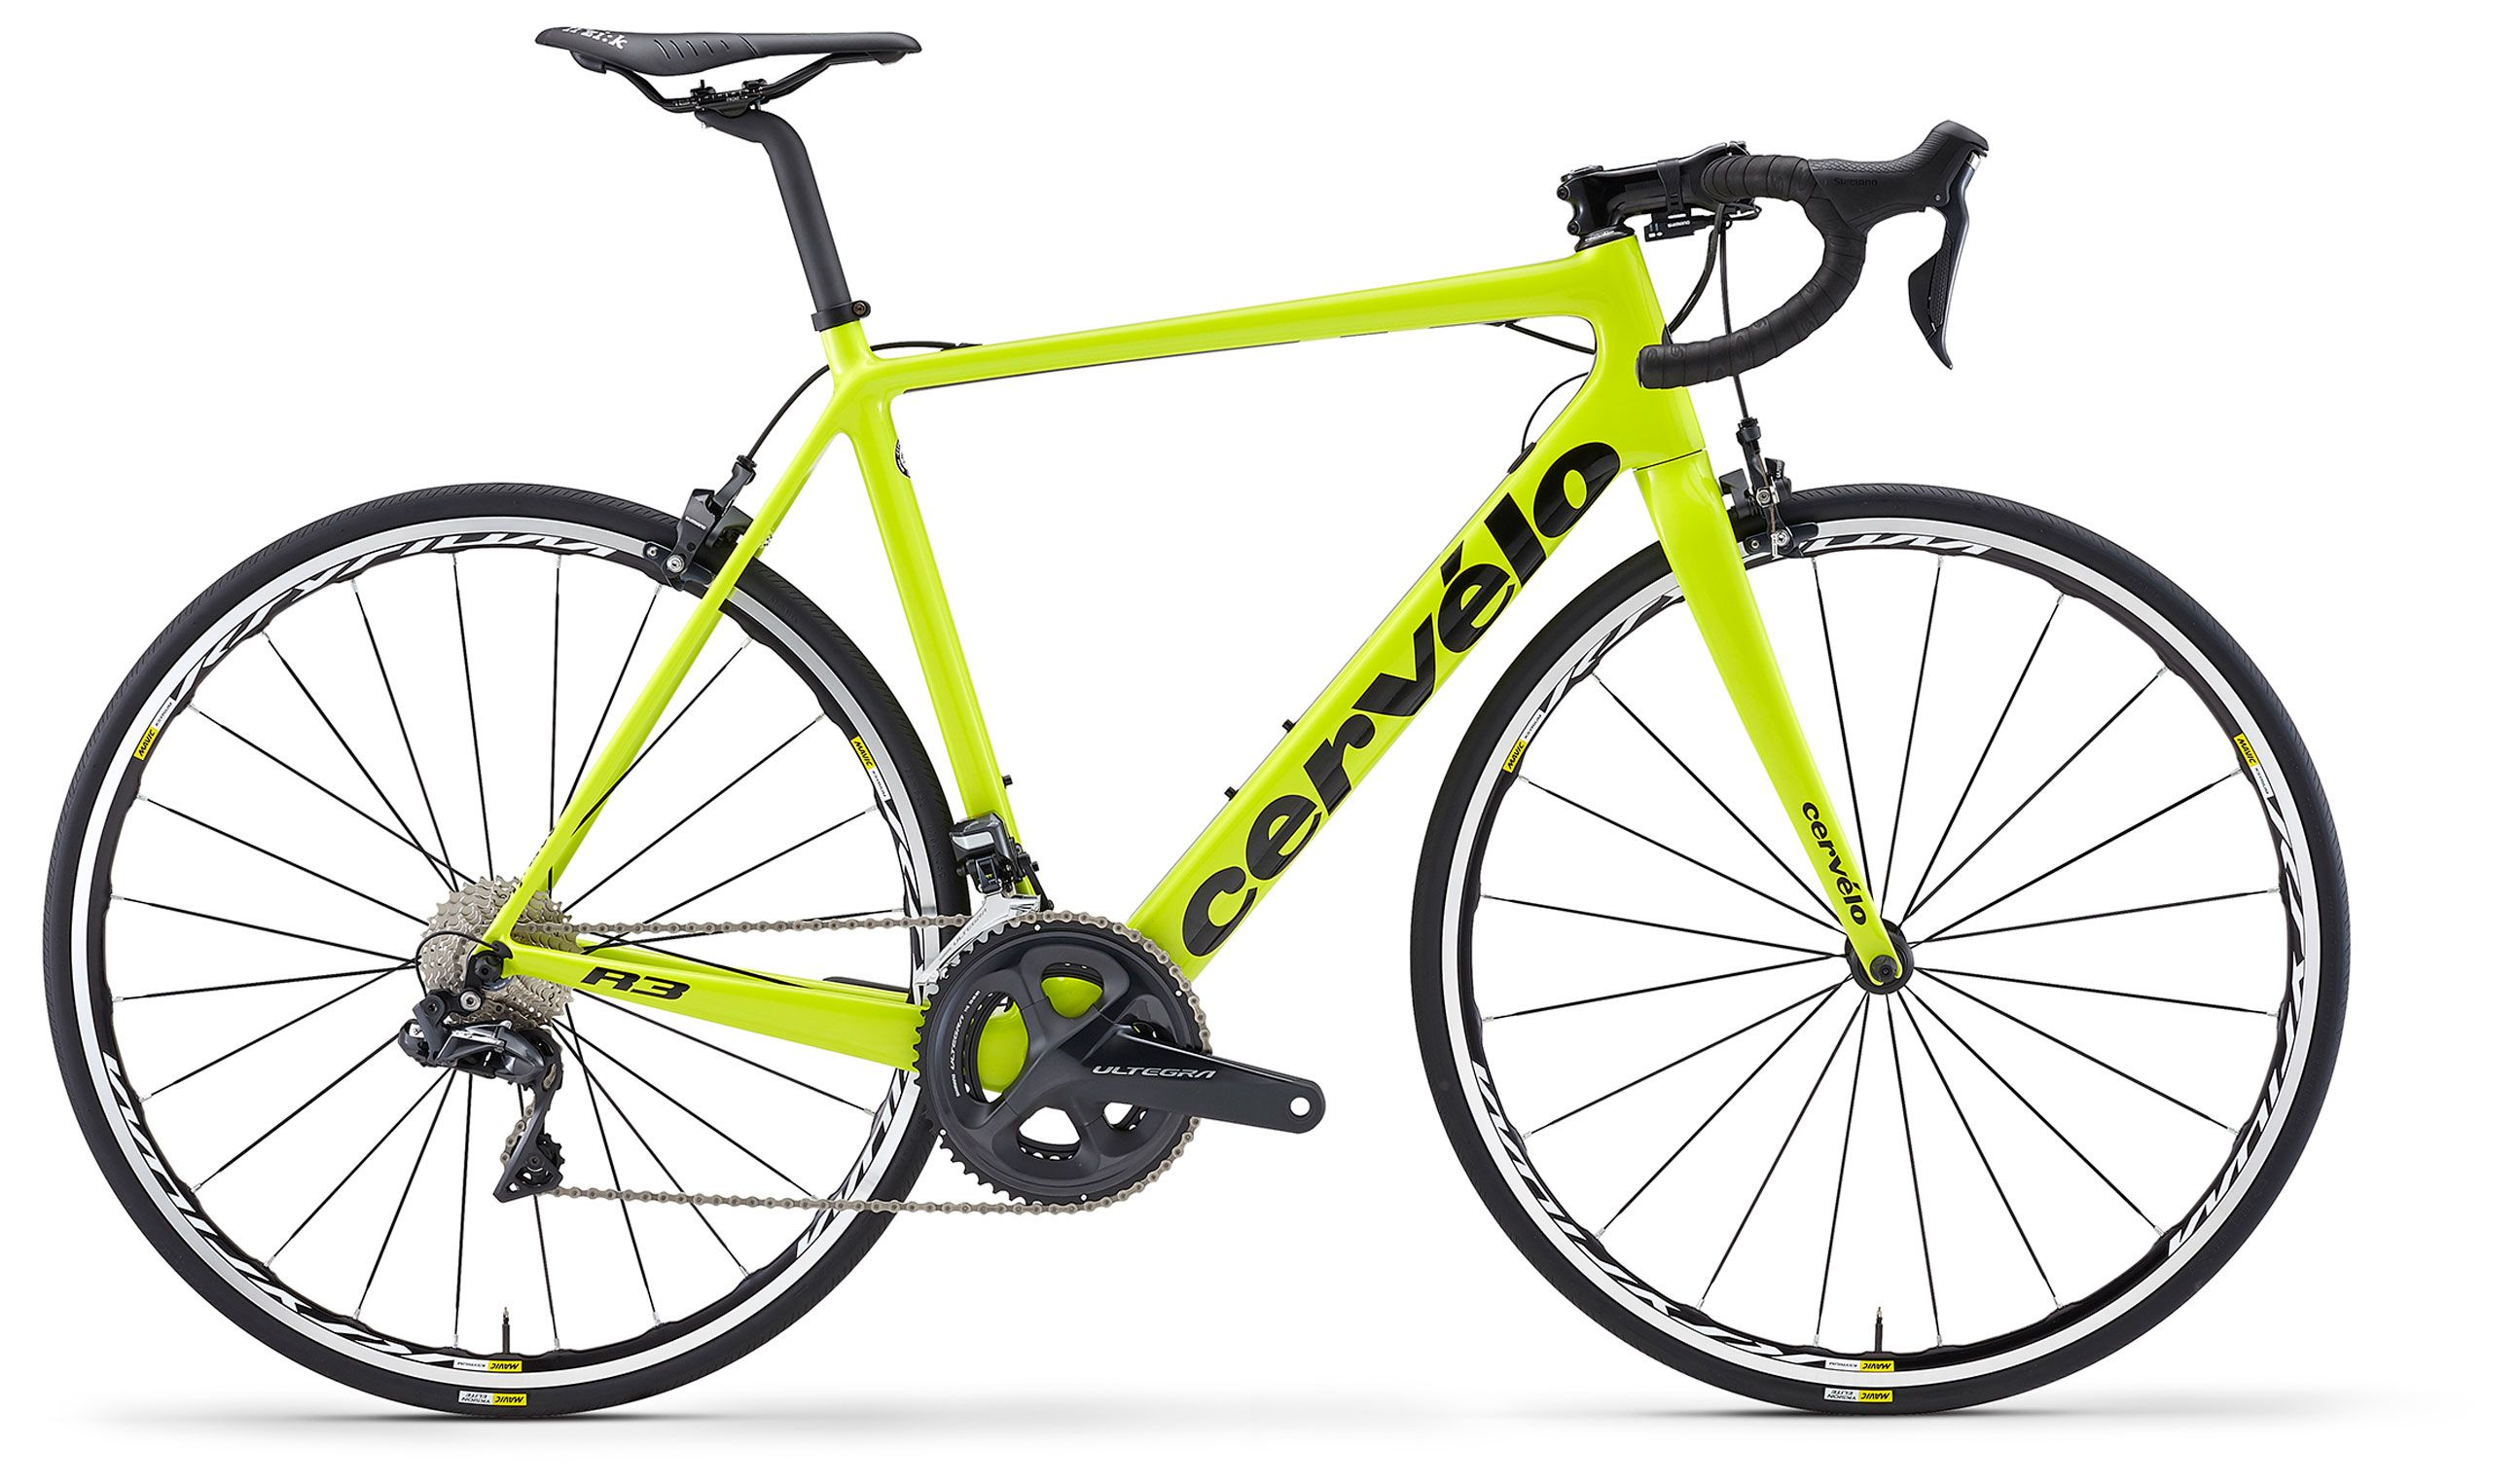 Велосипед Cervelo R3 Ultegra 2018 велосипед cannondale supersix evo ultegra 3 2016